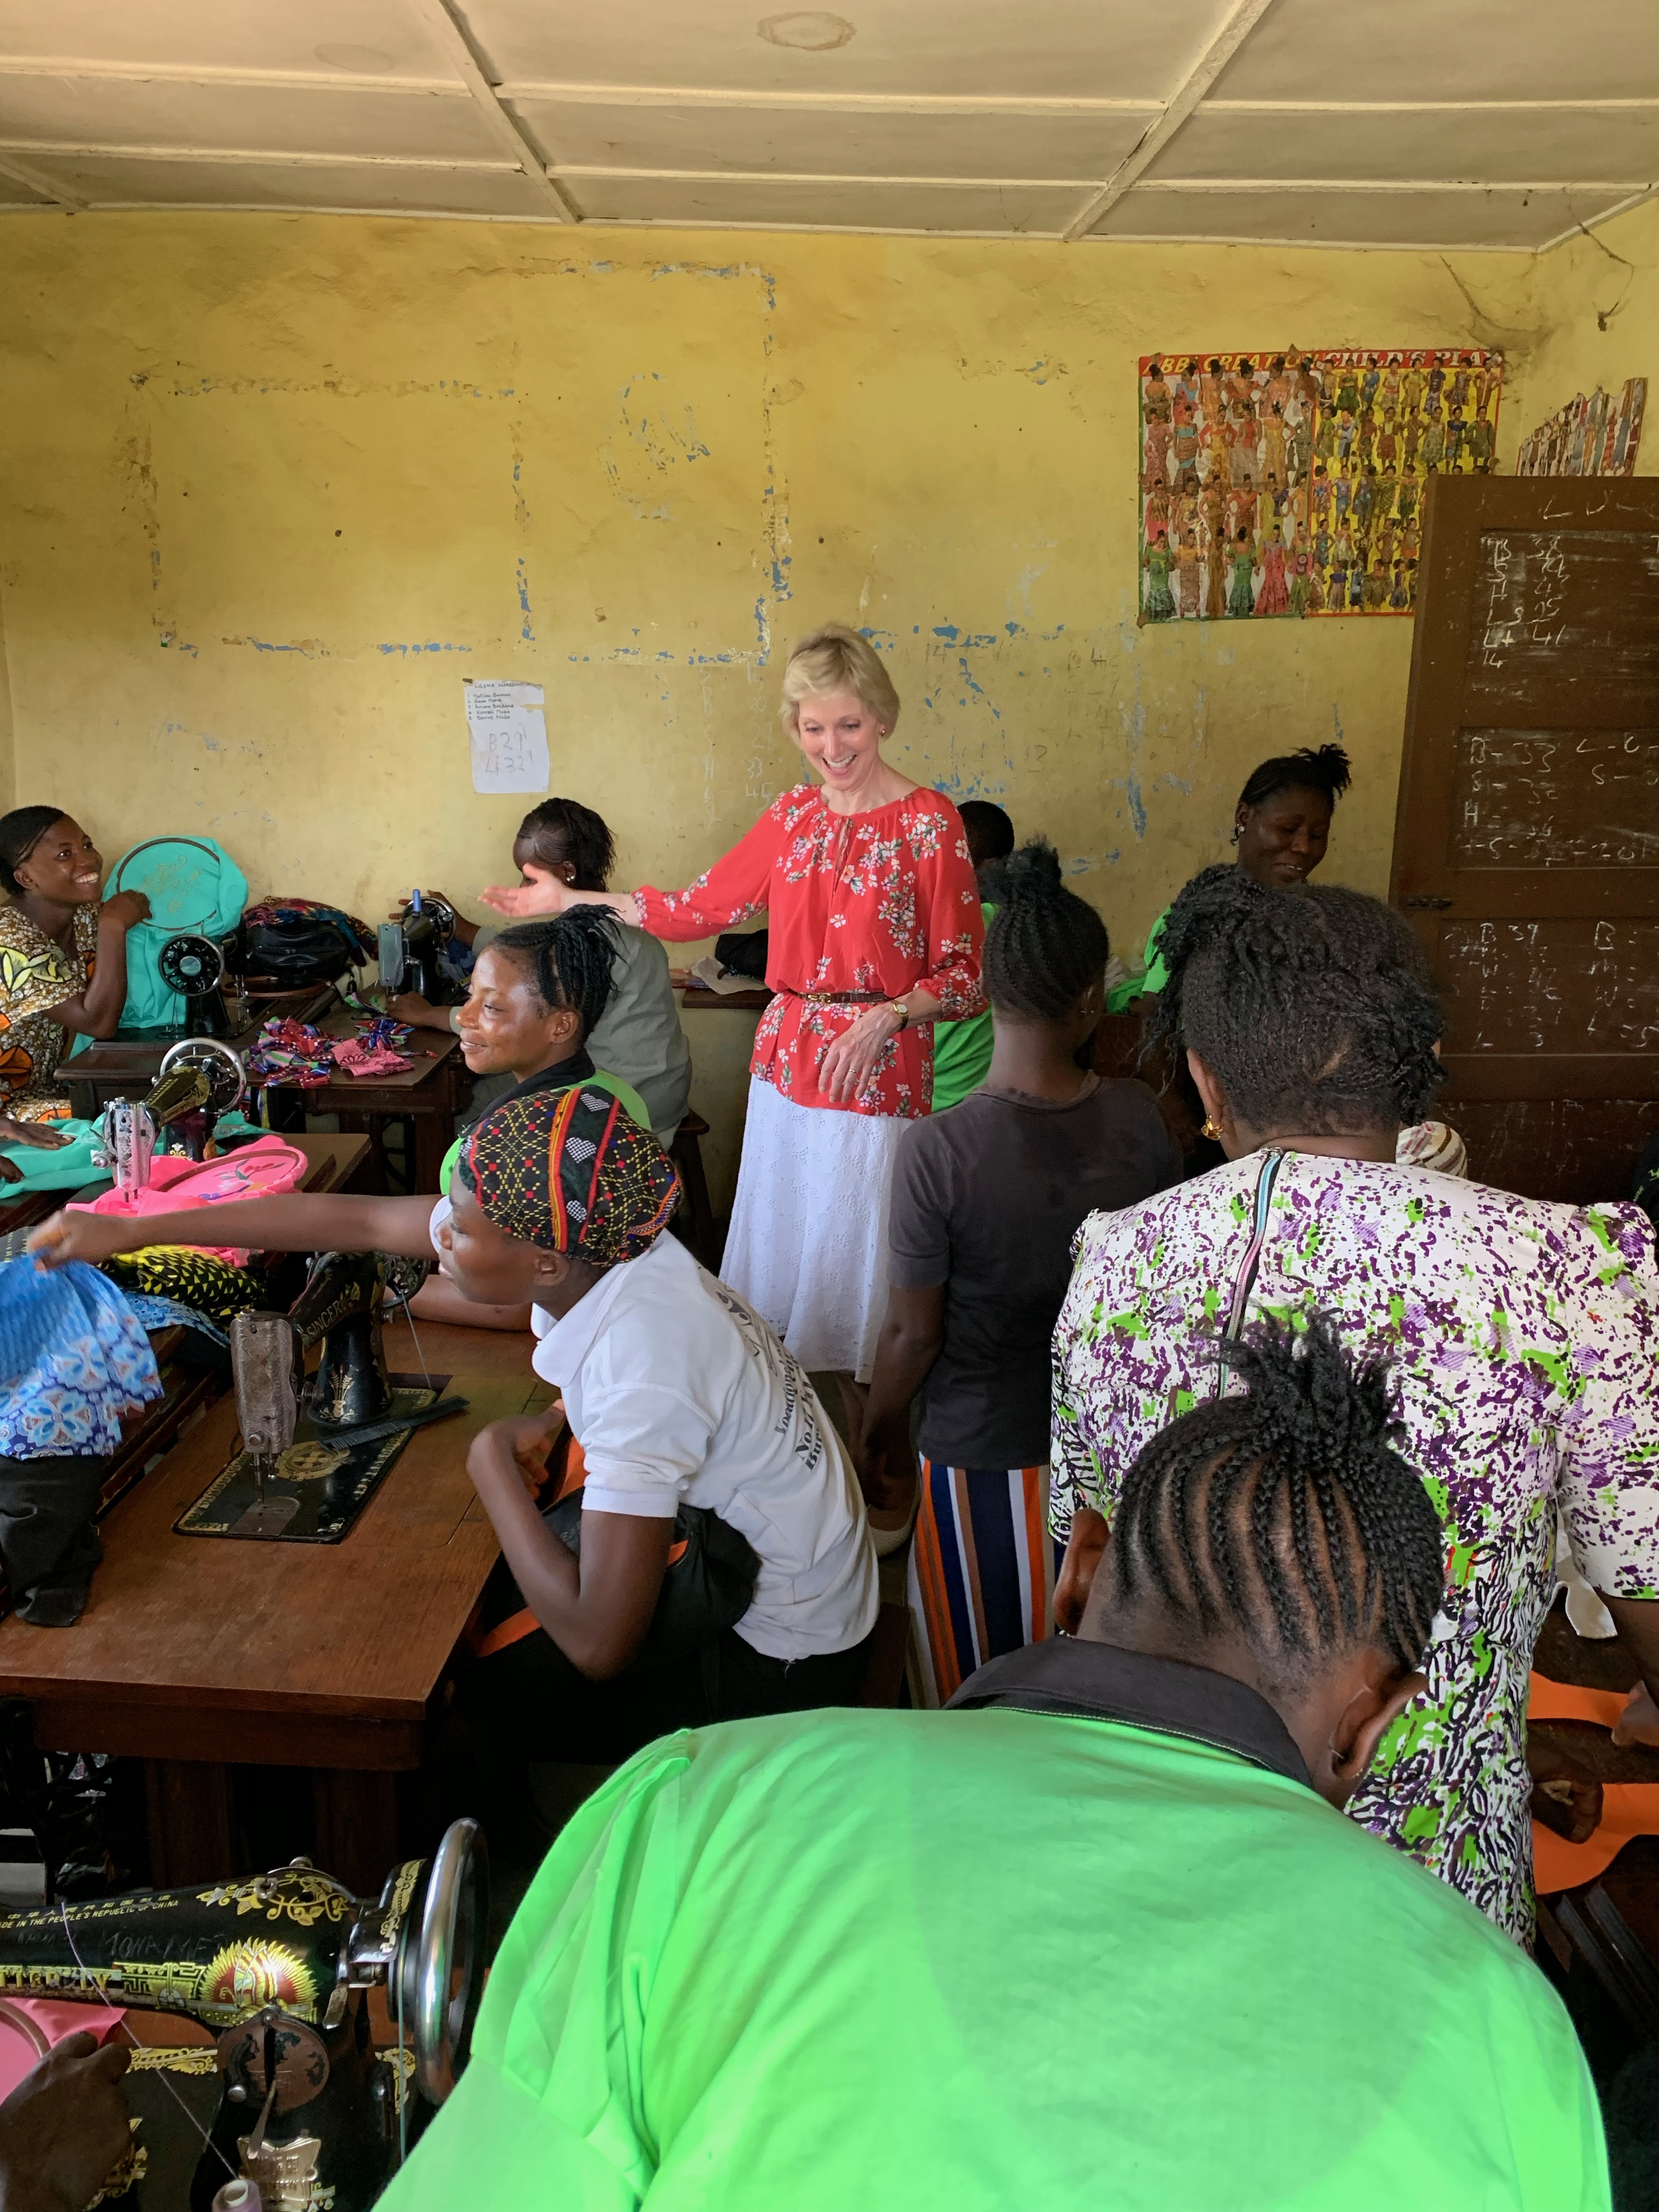 Sister Jean B. Bingham visits with members in Sierra Leone while visiting to observe the implementation of the Gospel Literacy program. Sister Bingham, Relief Society general president, visited the West African country June 5 through June 16, 2019.